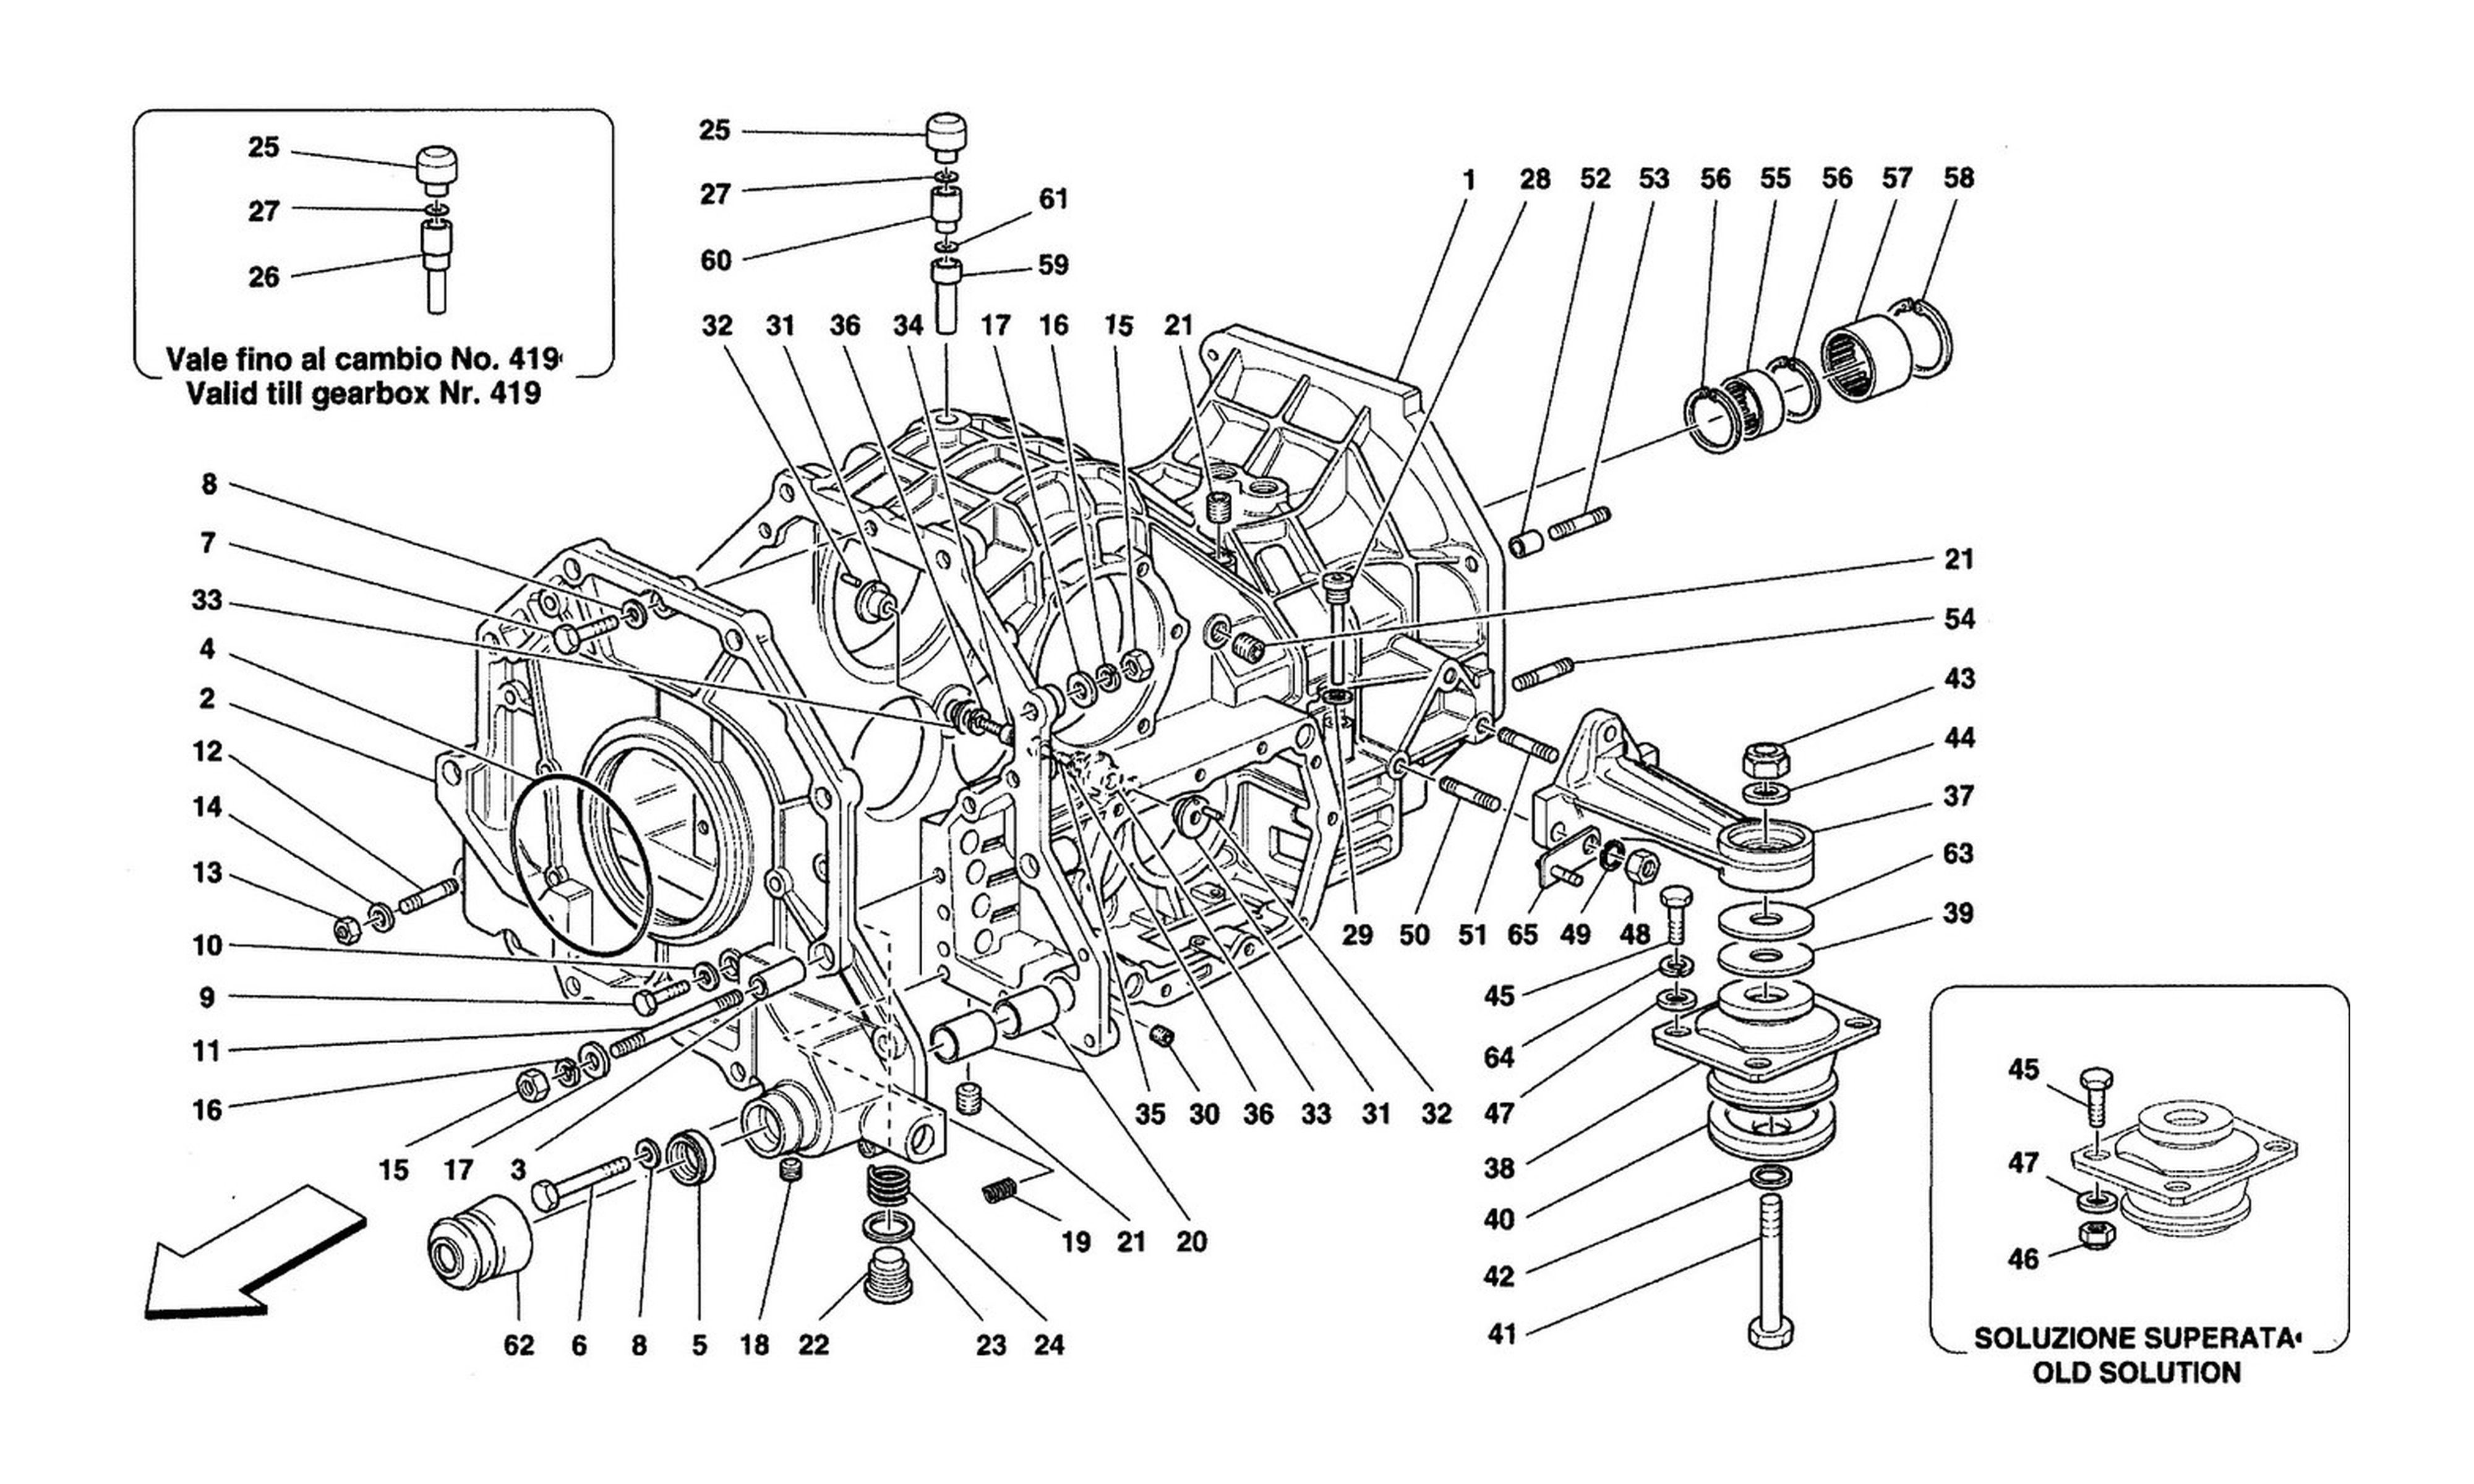 Table 27 - Gearbox - Differential Housing And Intermediate Casing